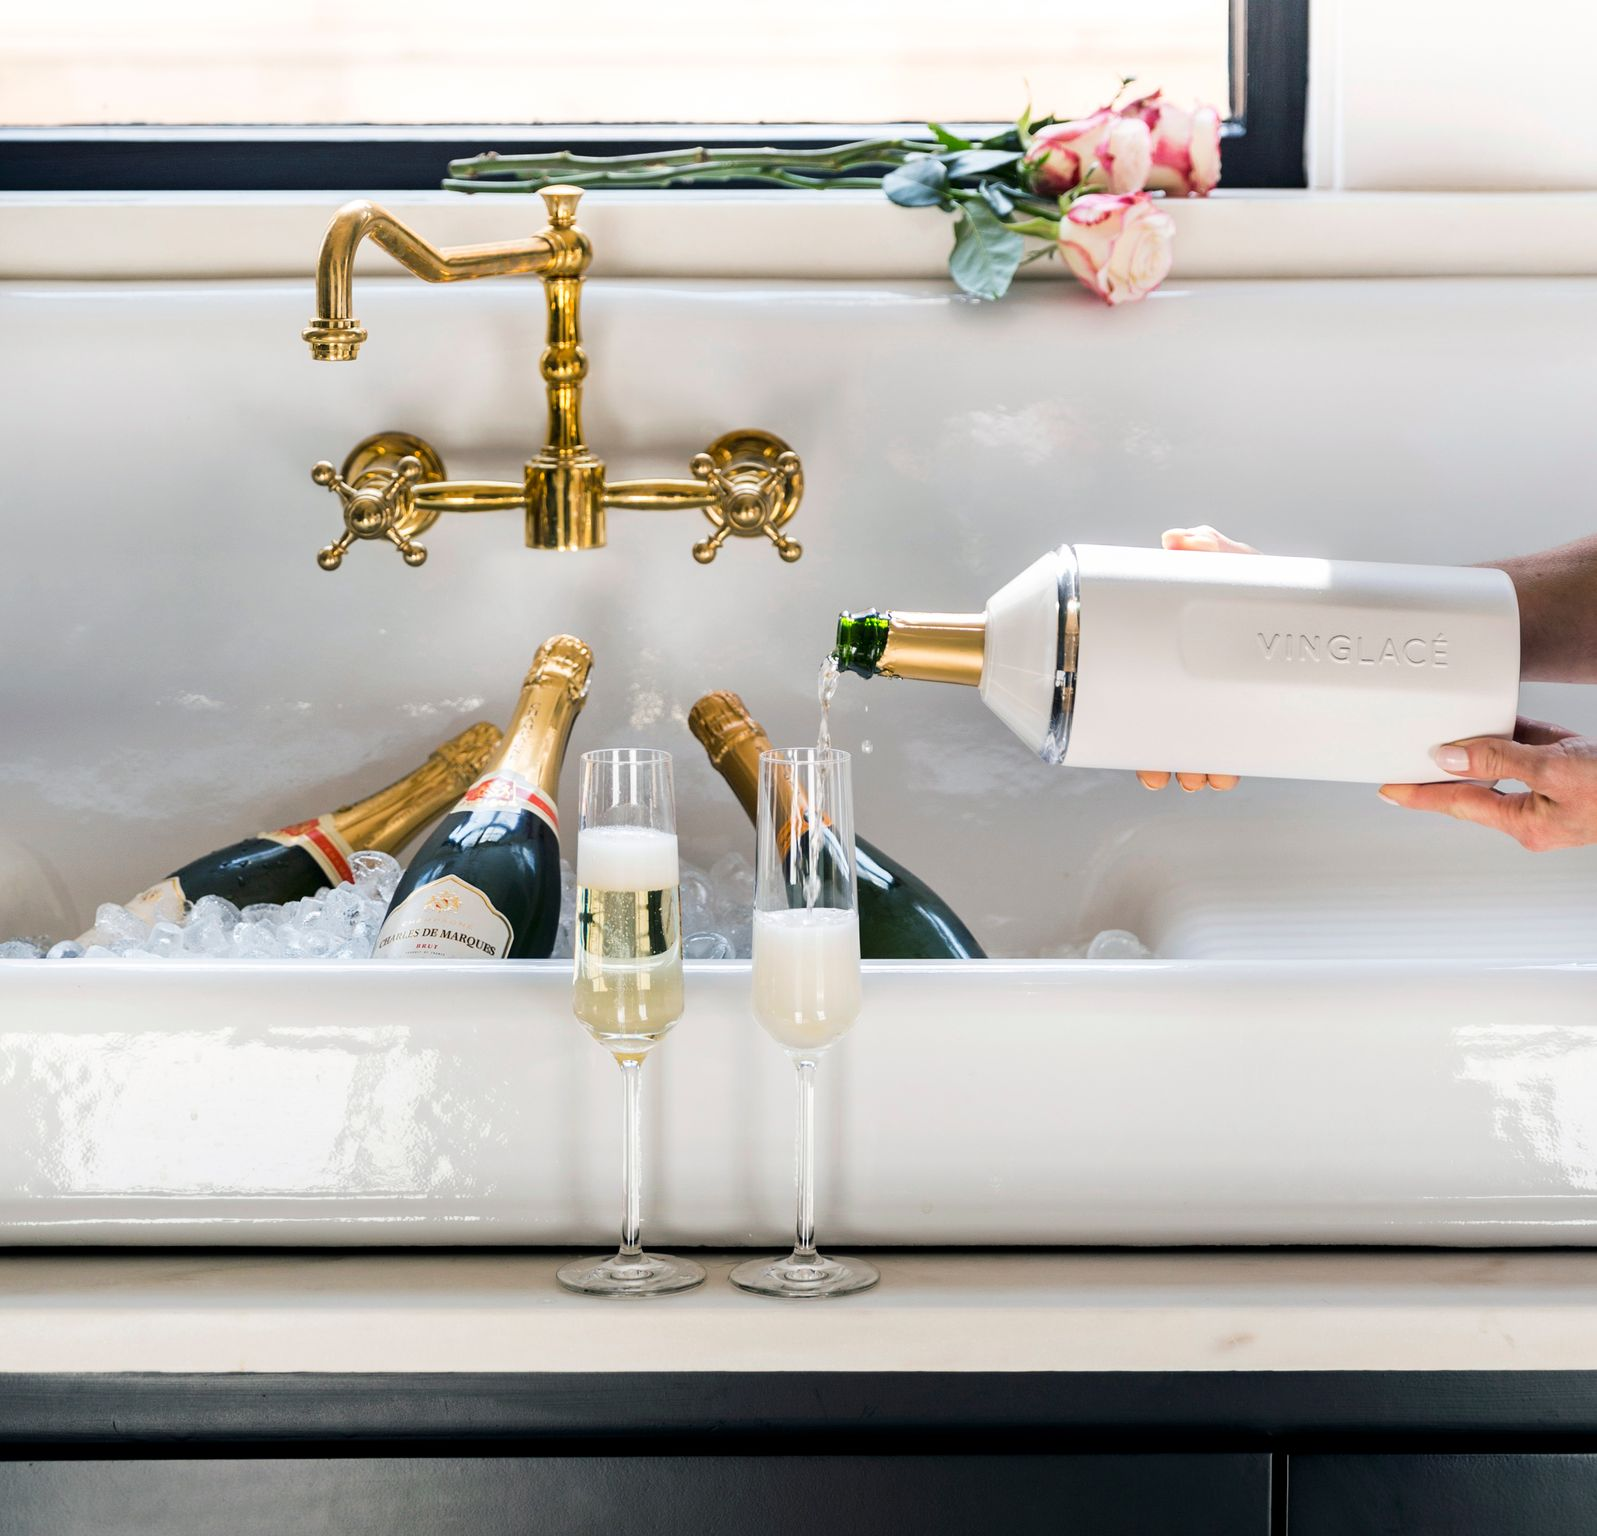 We created the Vinglacé line of products so that beverages of all types could be enjoyed at the proper temperature, without any metallic taste or smell. Whether it's wine or champagne, coffee or tea, sparkling water or soda, nobody likes the taste of metal.